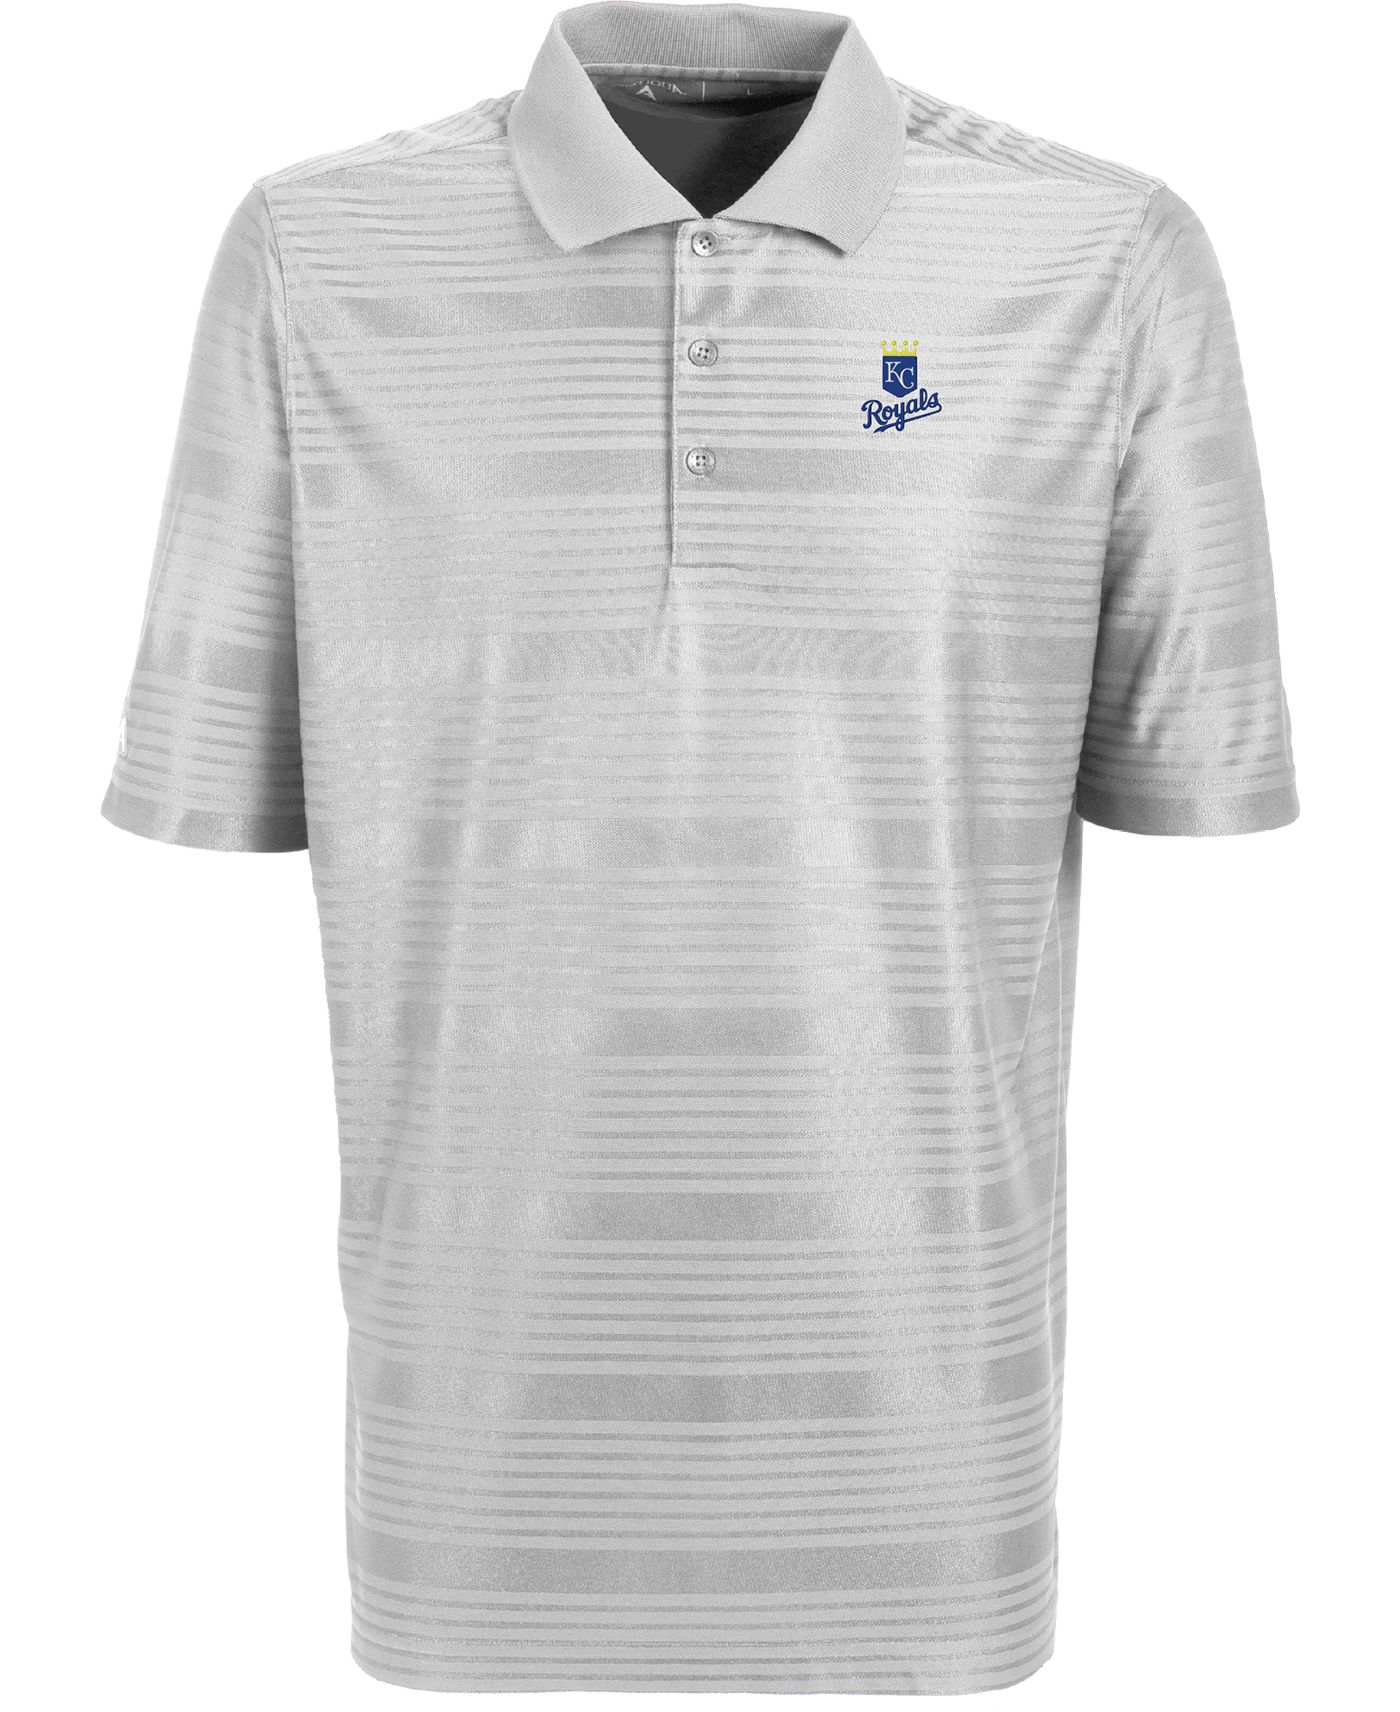 Antigua Men's Kansas City Royals Illusion White Striped Performance Polo